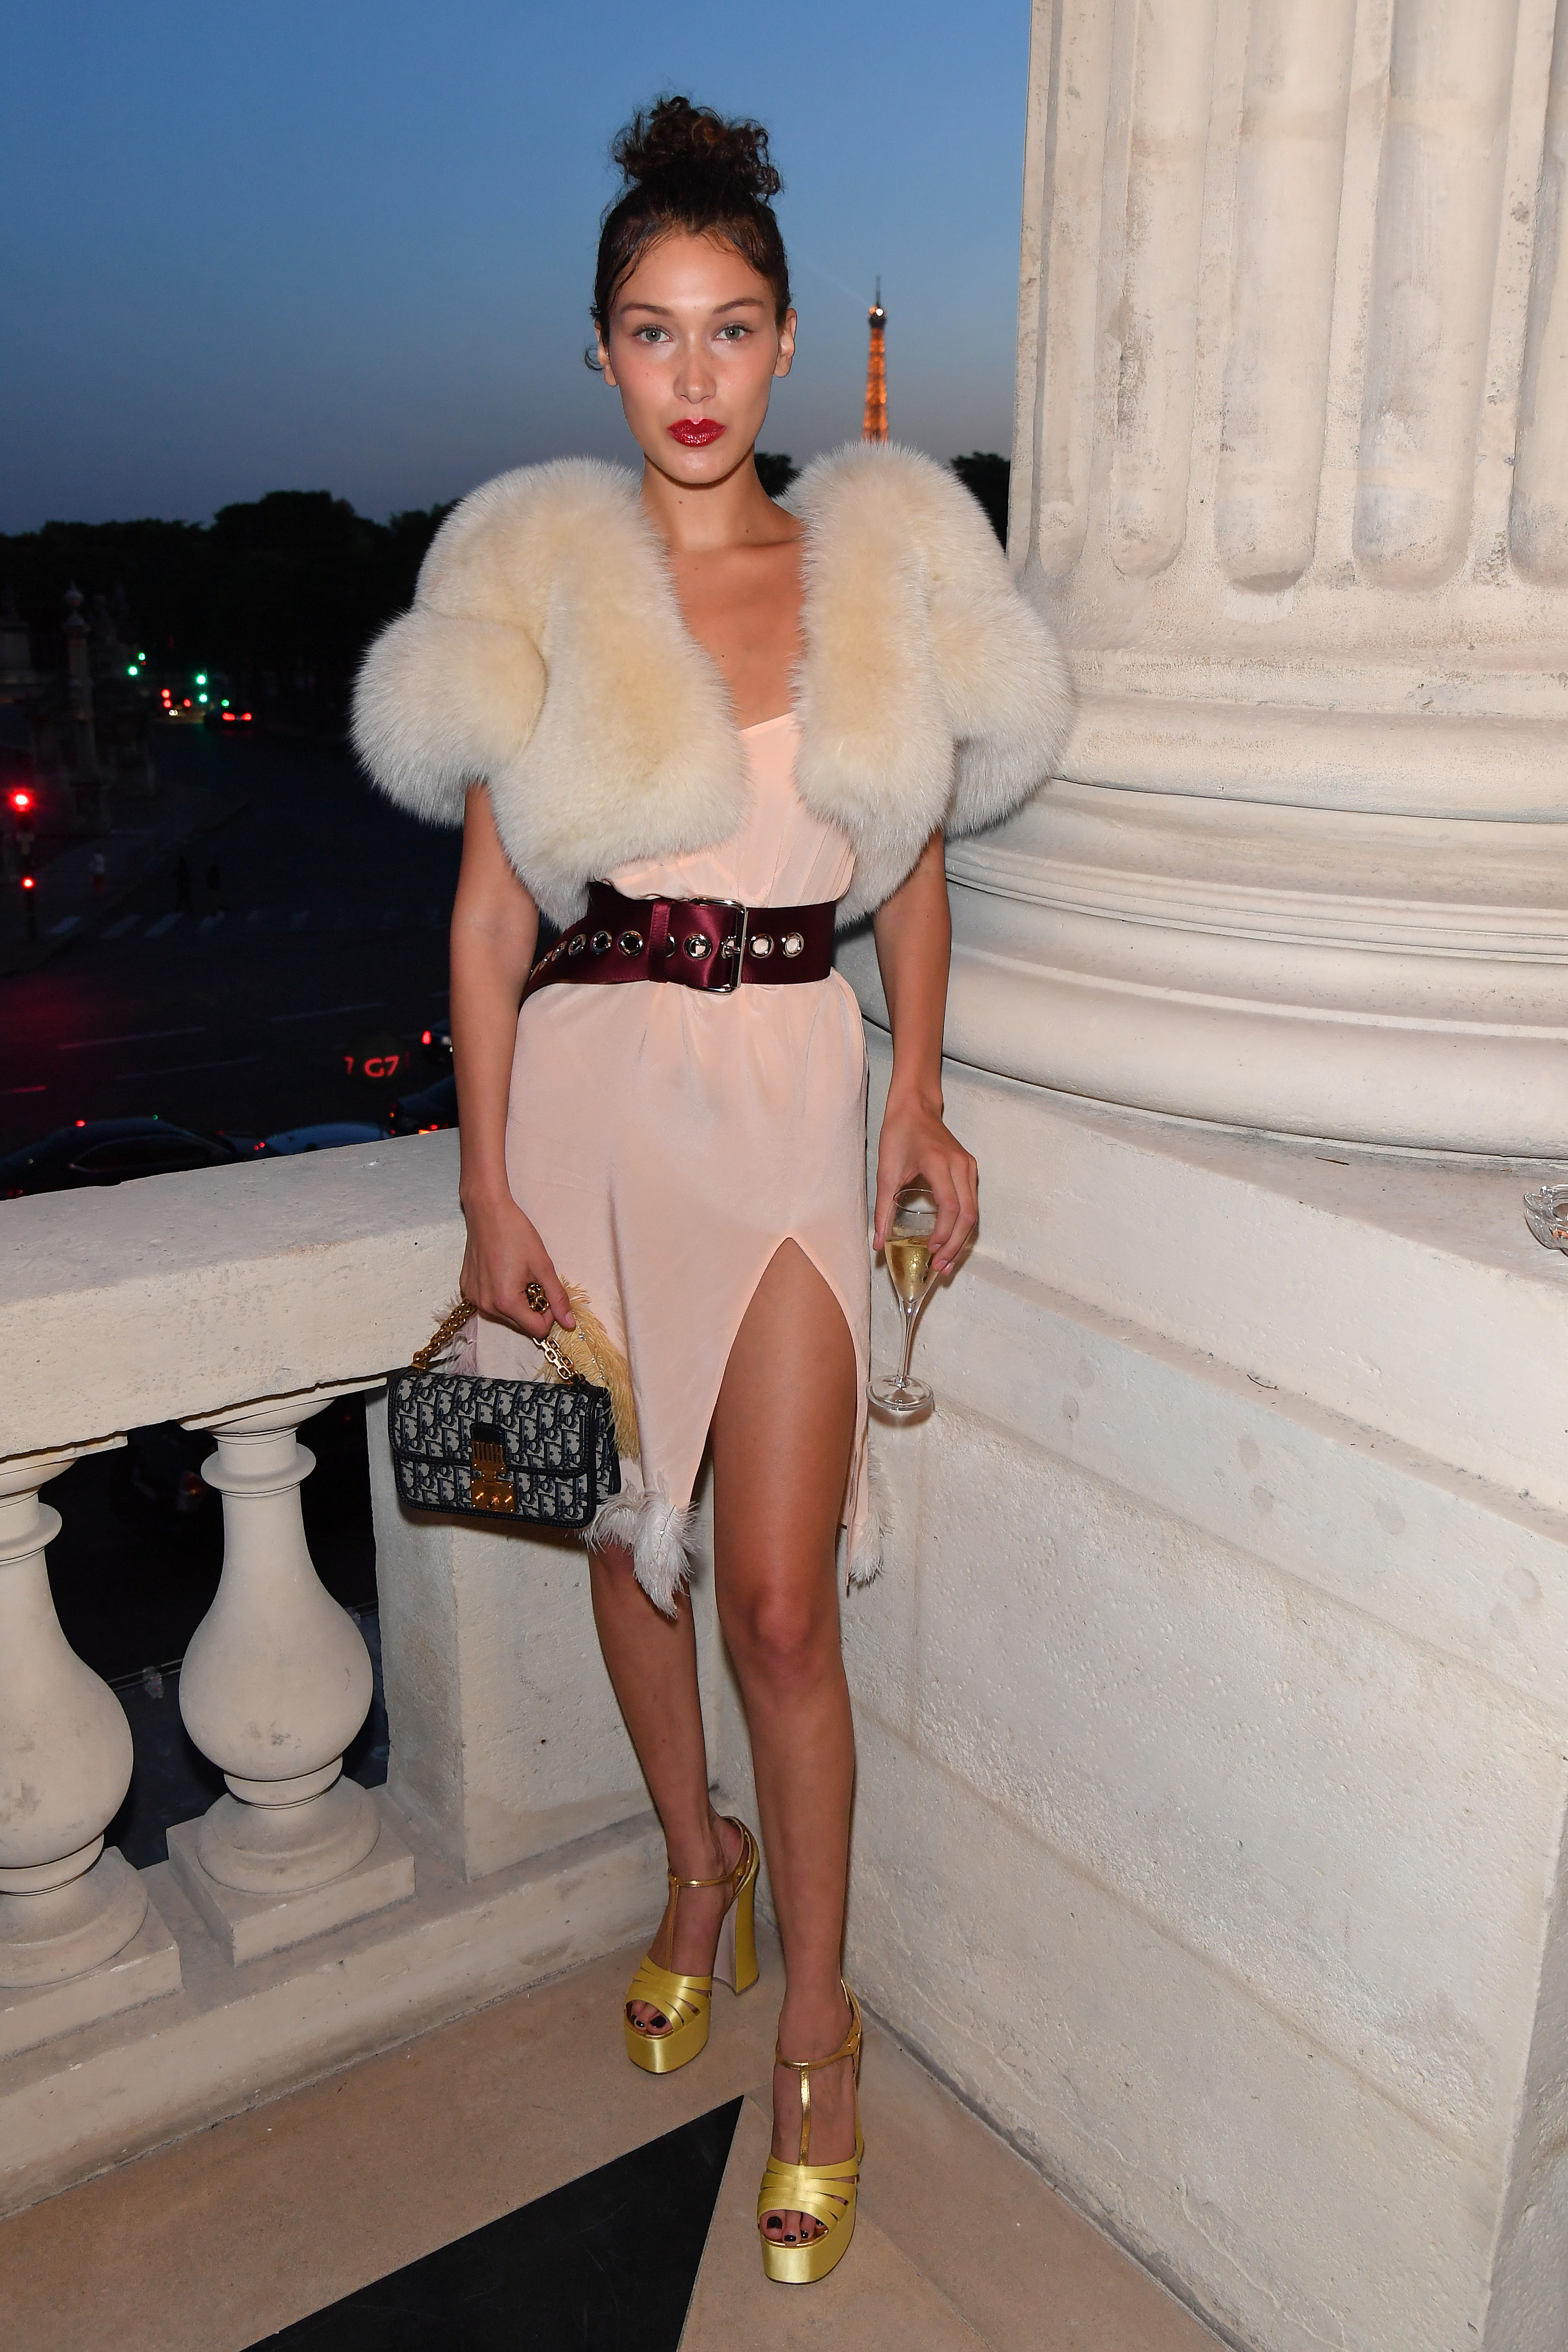 PARIS, FRANCE - JULY 02:  Bella Hadid attends Miu Miu Cruise Collection cocktail & party as part of Haute Couture Paris Fashion Week on July 2, 2017 in Paris, France.  (Photo by Dominique Charriau/WireImage) *** Local Caption *** Bella Hadid